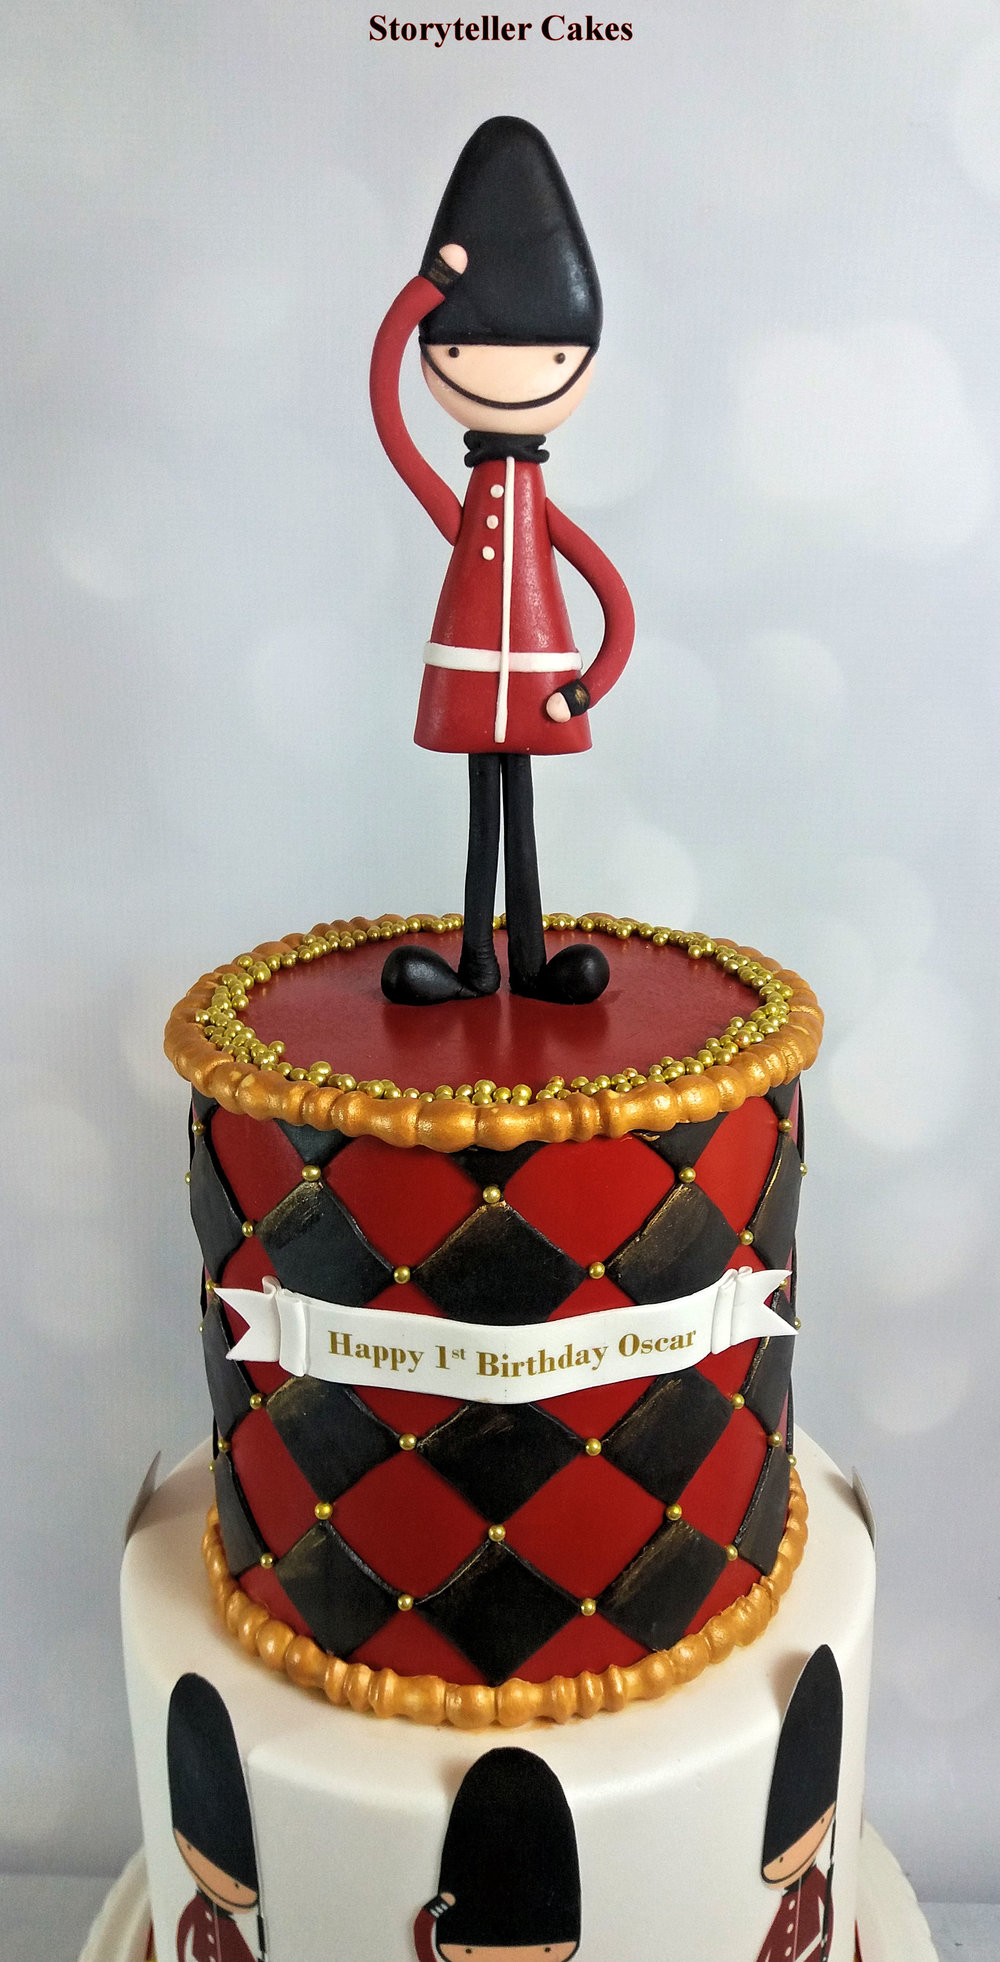 Queens Guards Boys 1st Birthday Cake 2.jpg